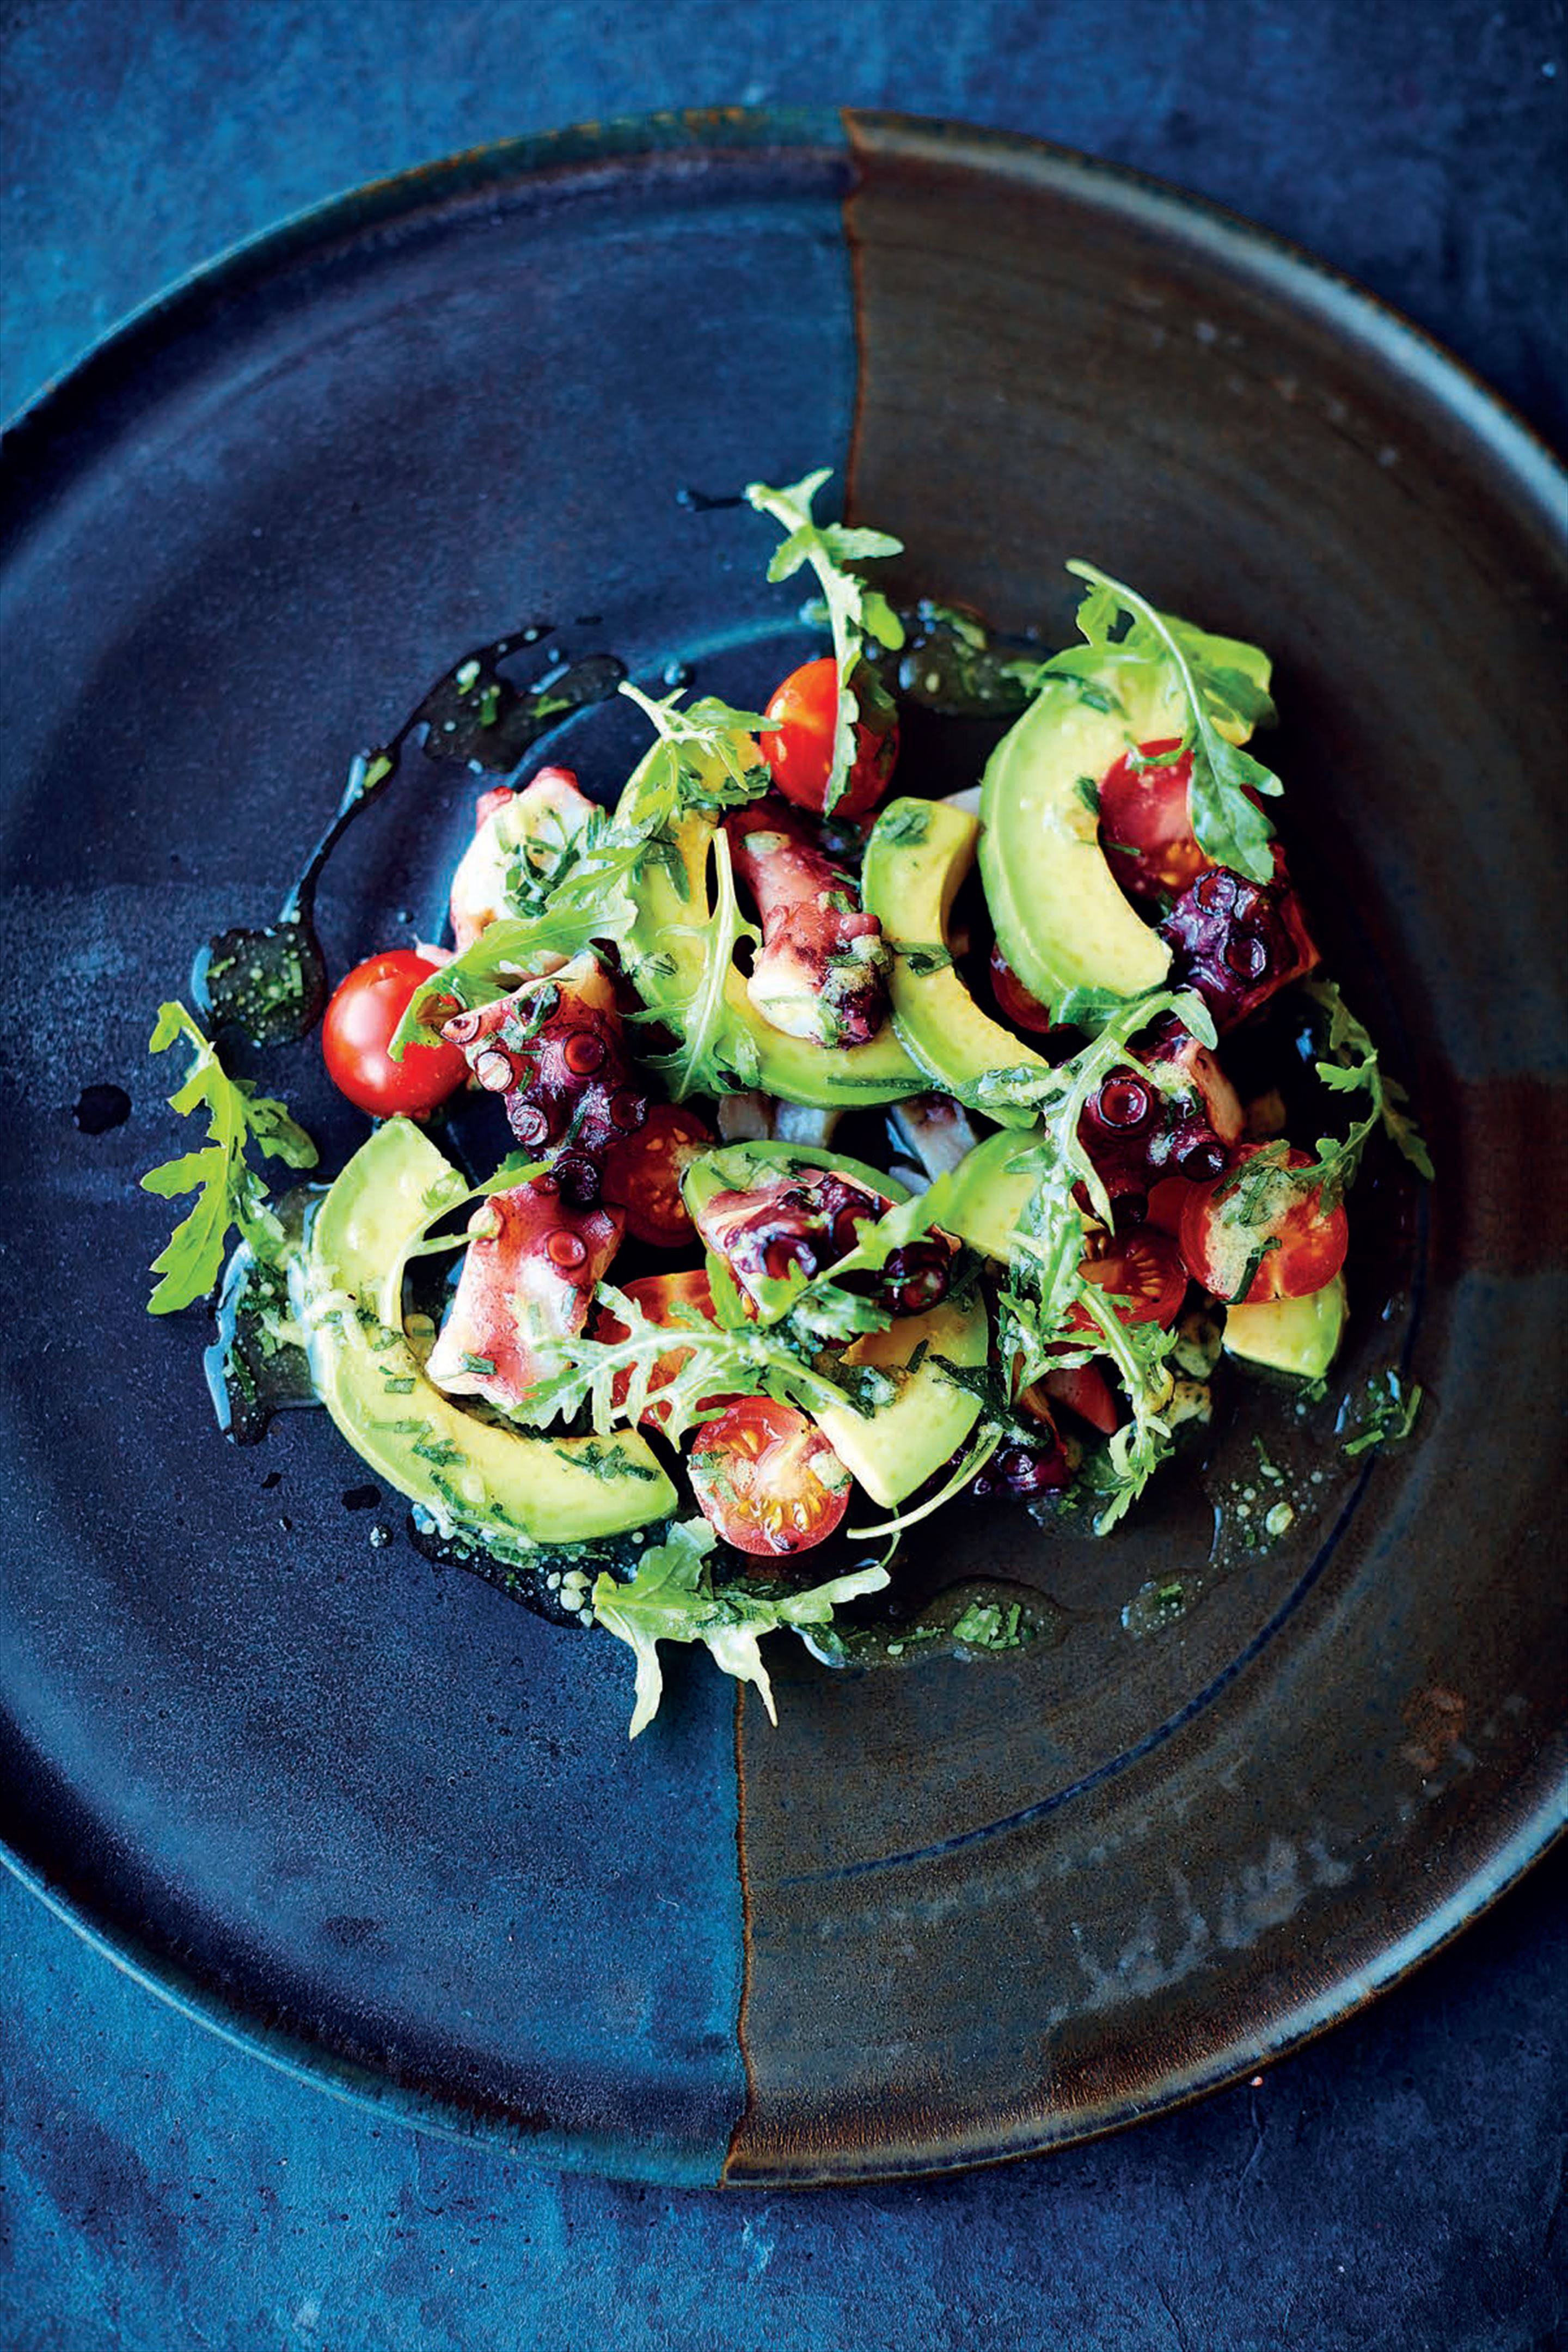 Octopus, avocado and tomato salad, lime and coriander dressing